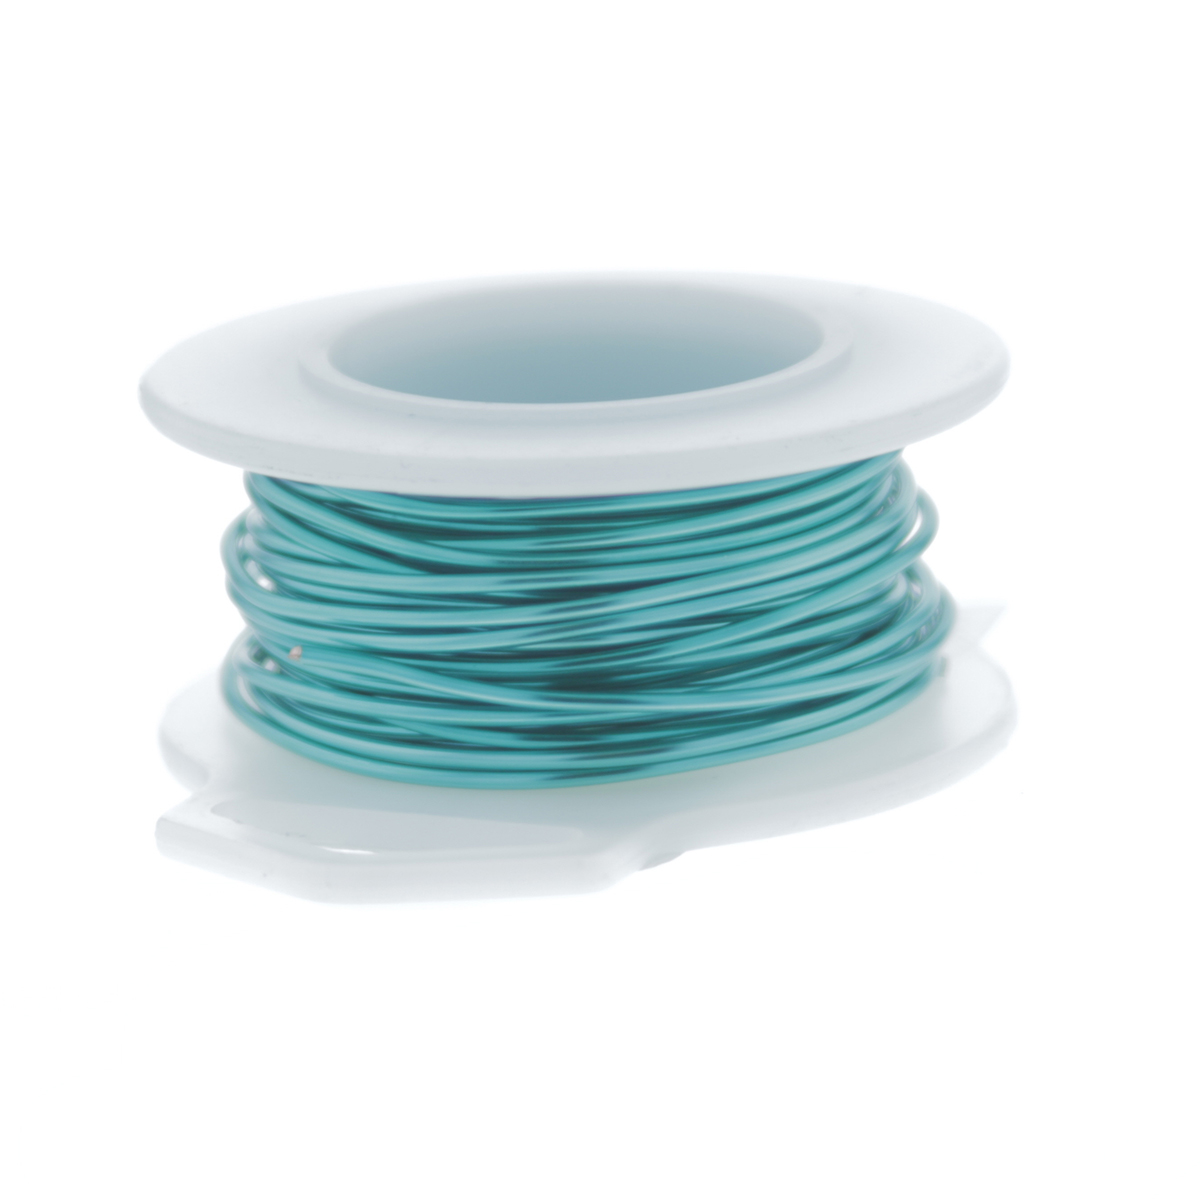 24 Gauge Round Silver Plated Pacific Blue Copper Craft Wire - 30 ft ...